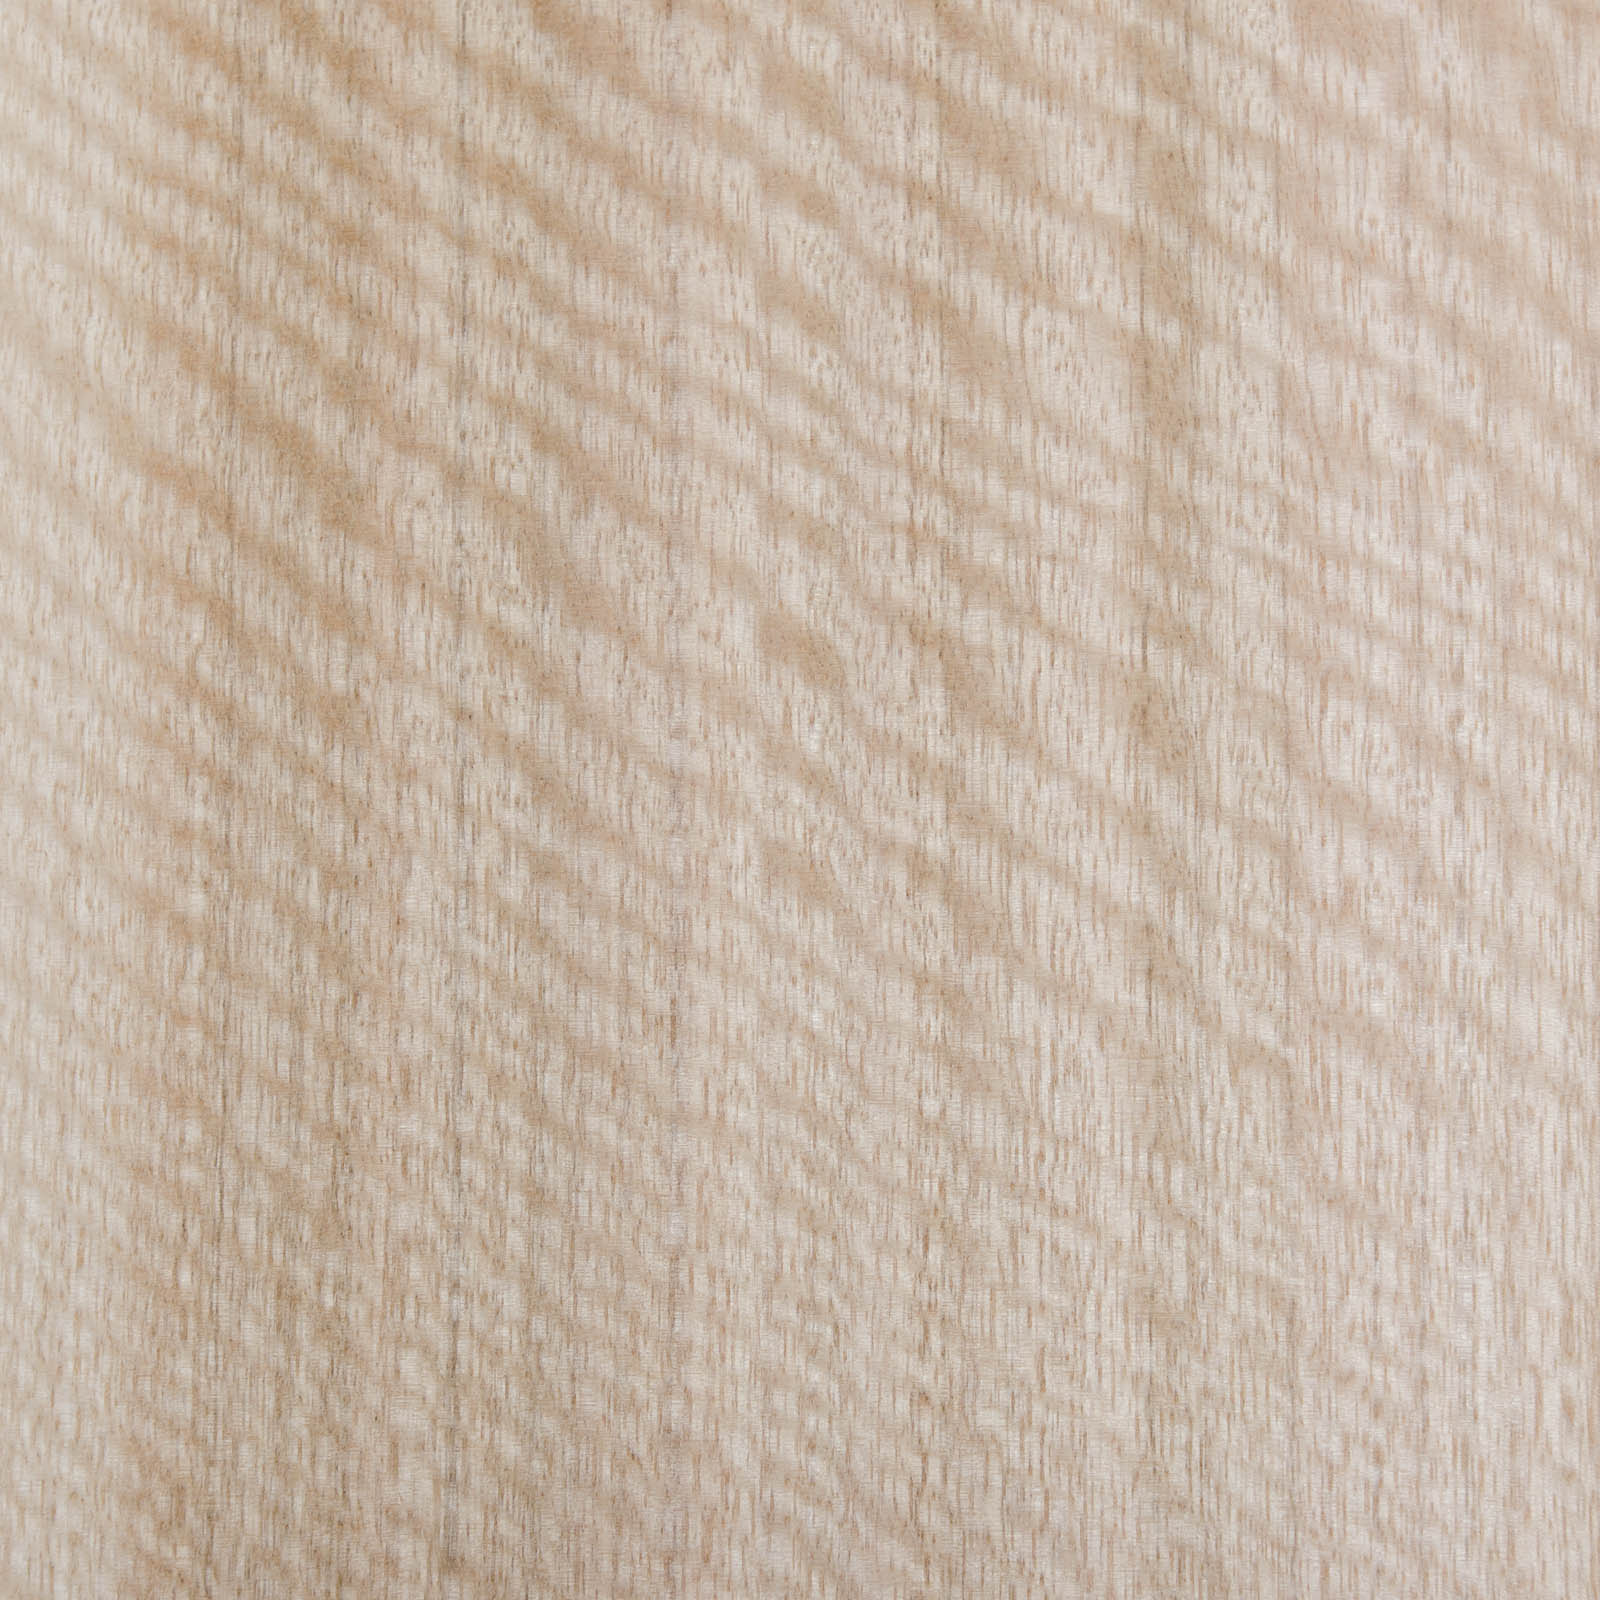 wood veneer paper 250 micron paperback wood paper sheets nissiwood paperback wood paper sheets are made from a microthin layer of veneer bonded with a layer of transparent paper.